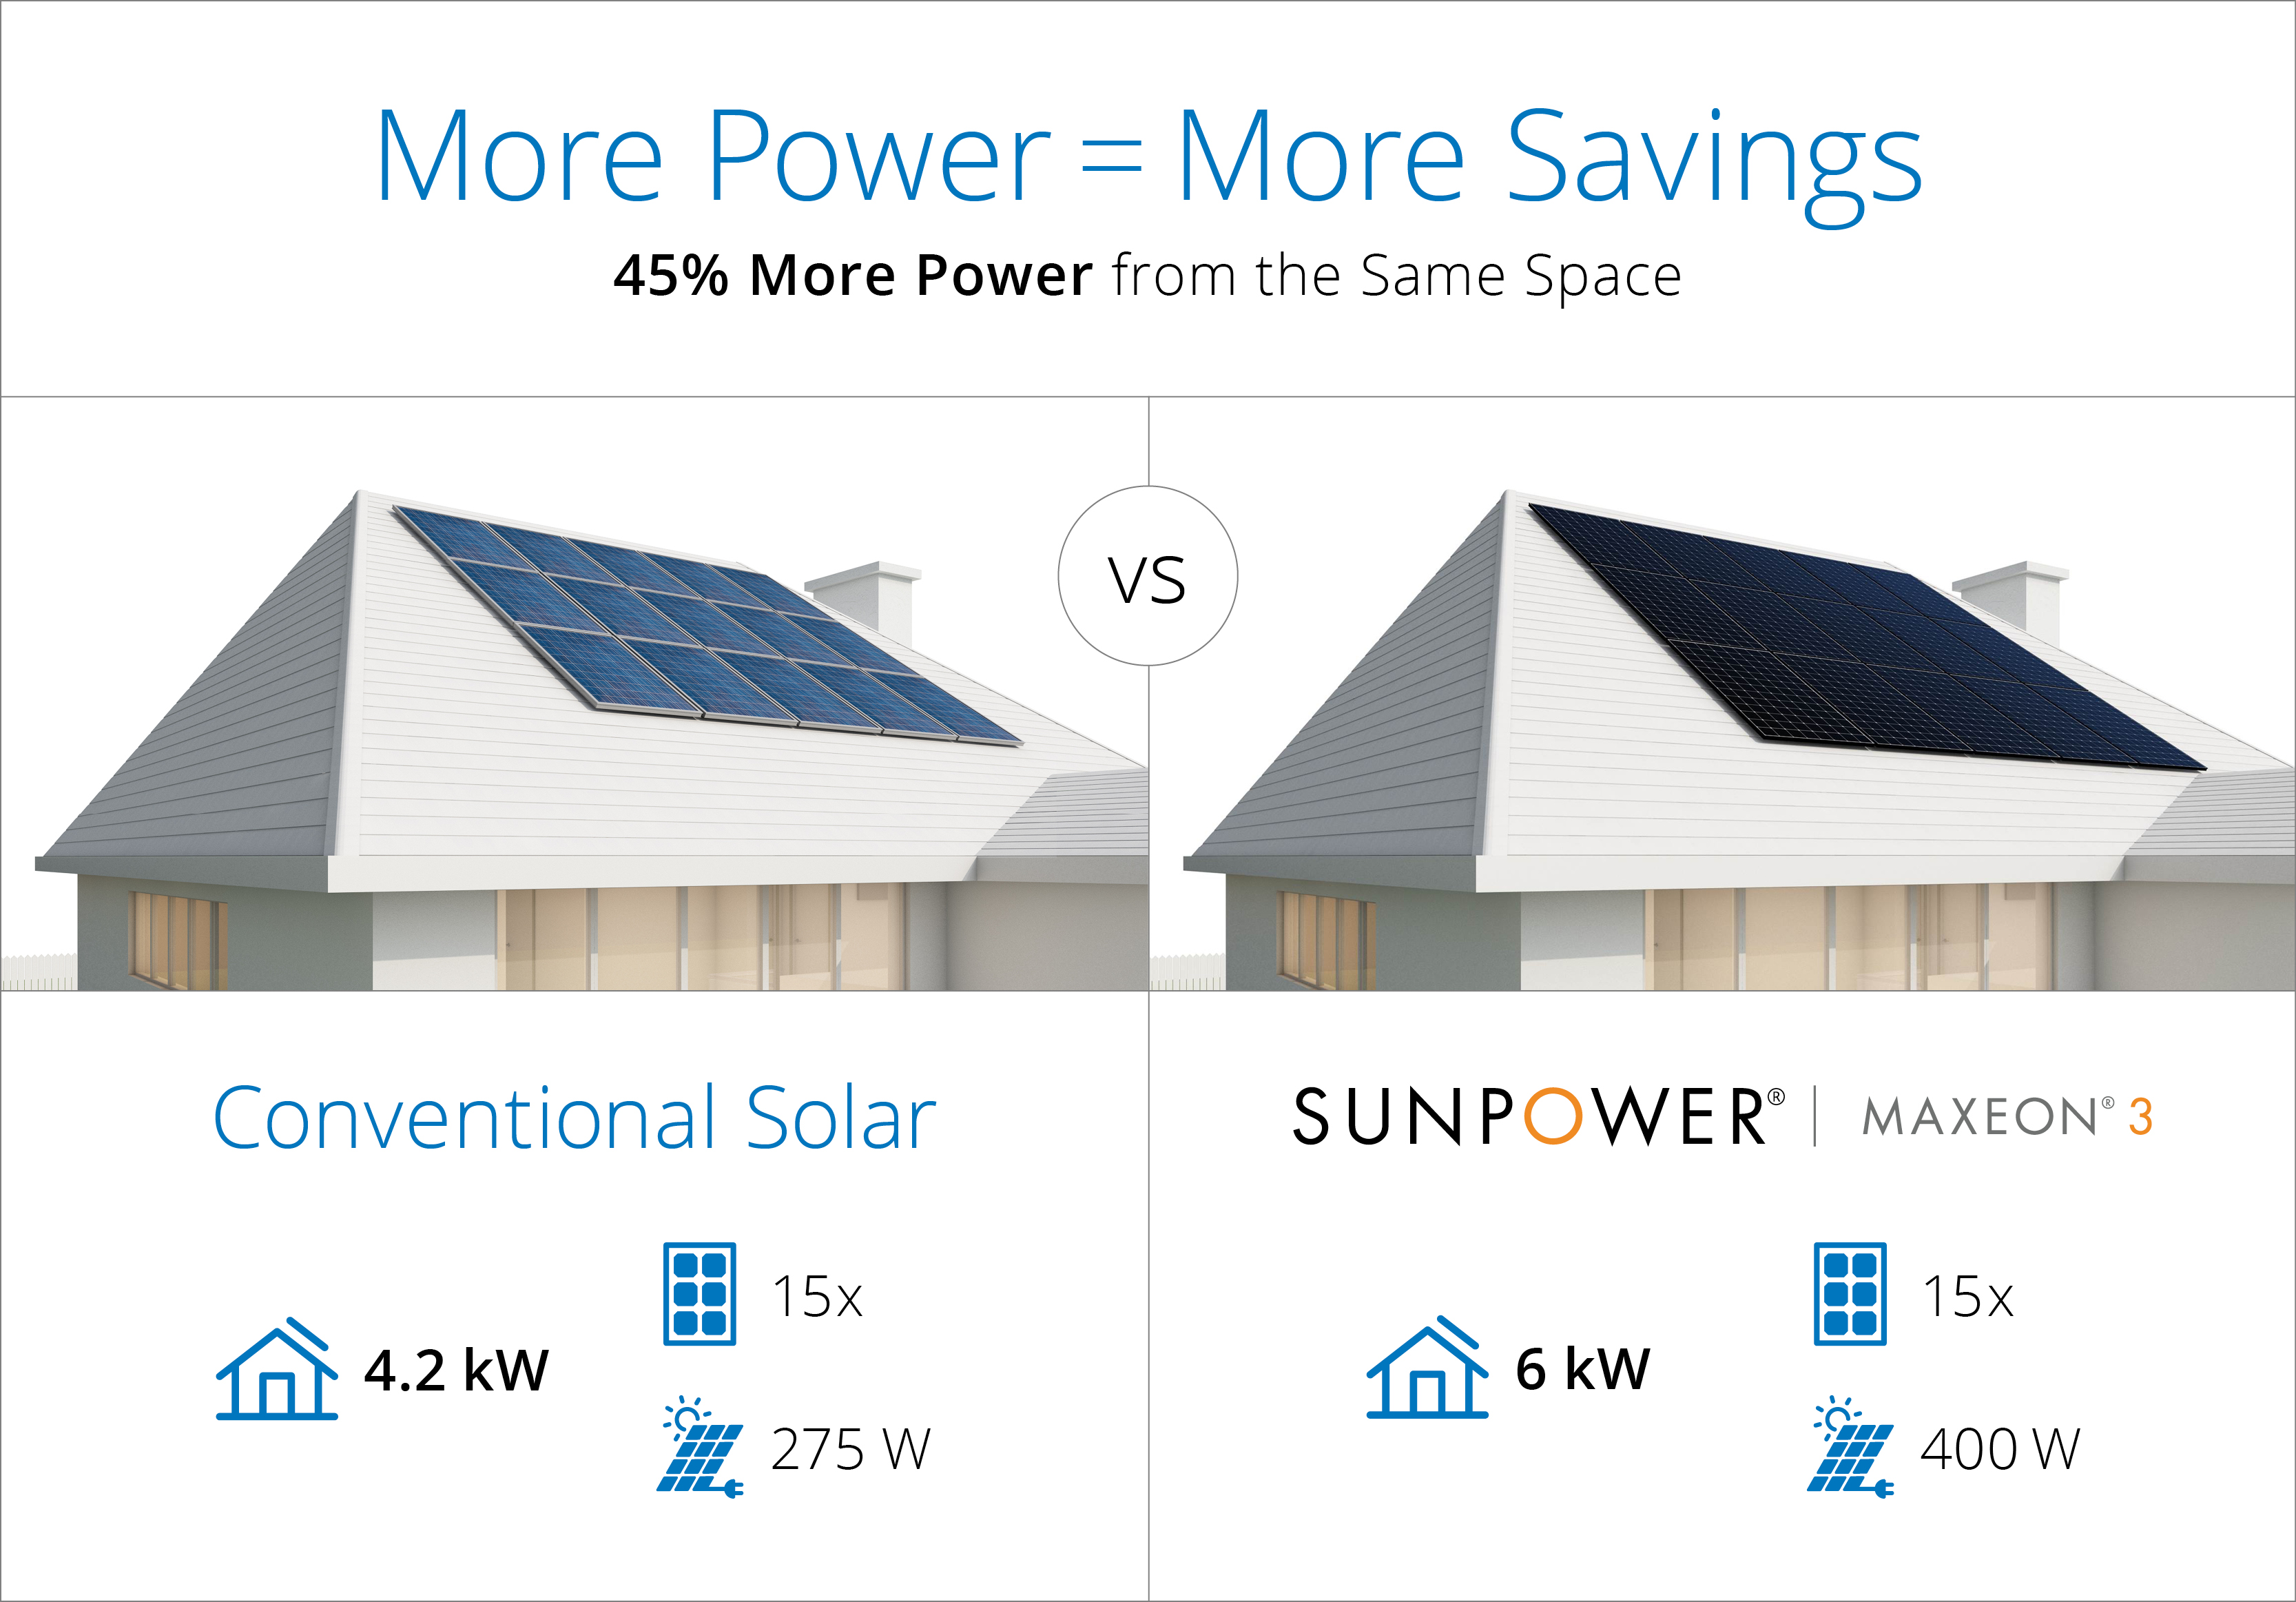 Sunpower size to power diagram